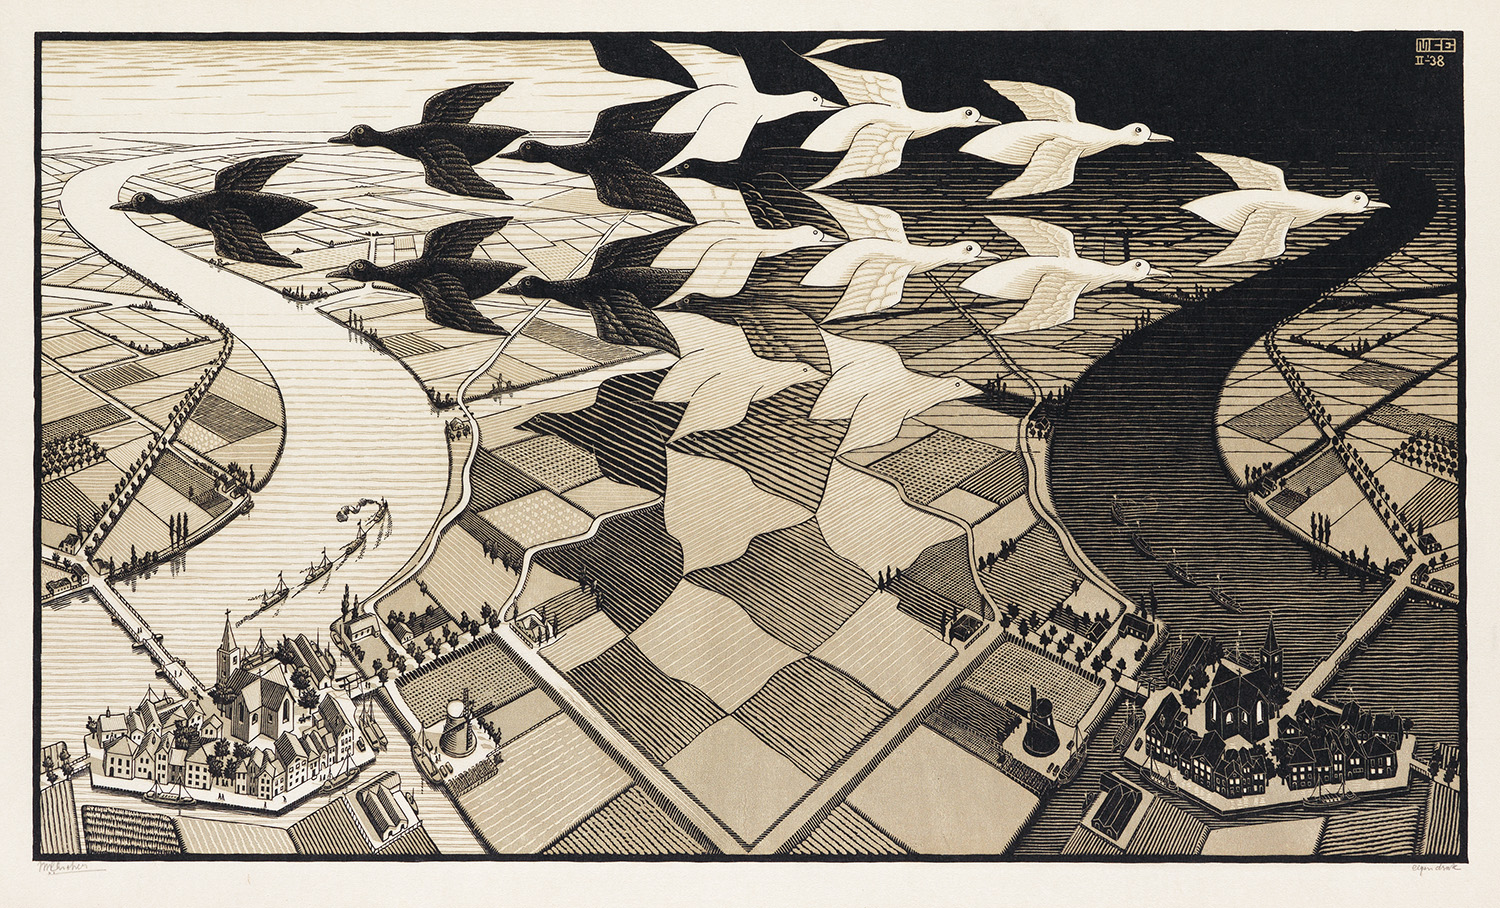 M. C. Escher's Day and Night, a 1935 print.